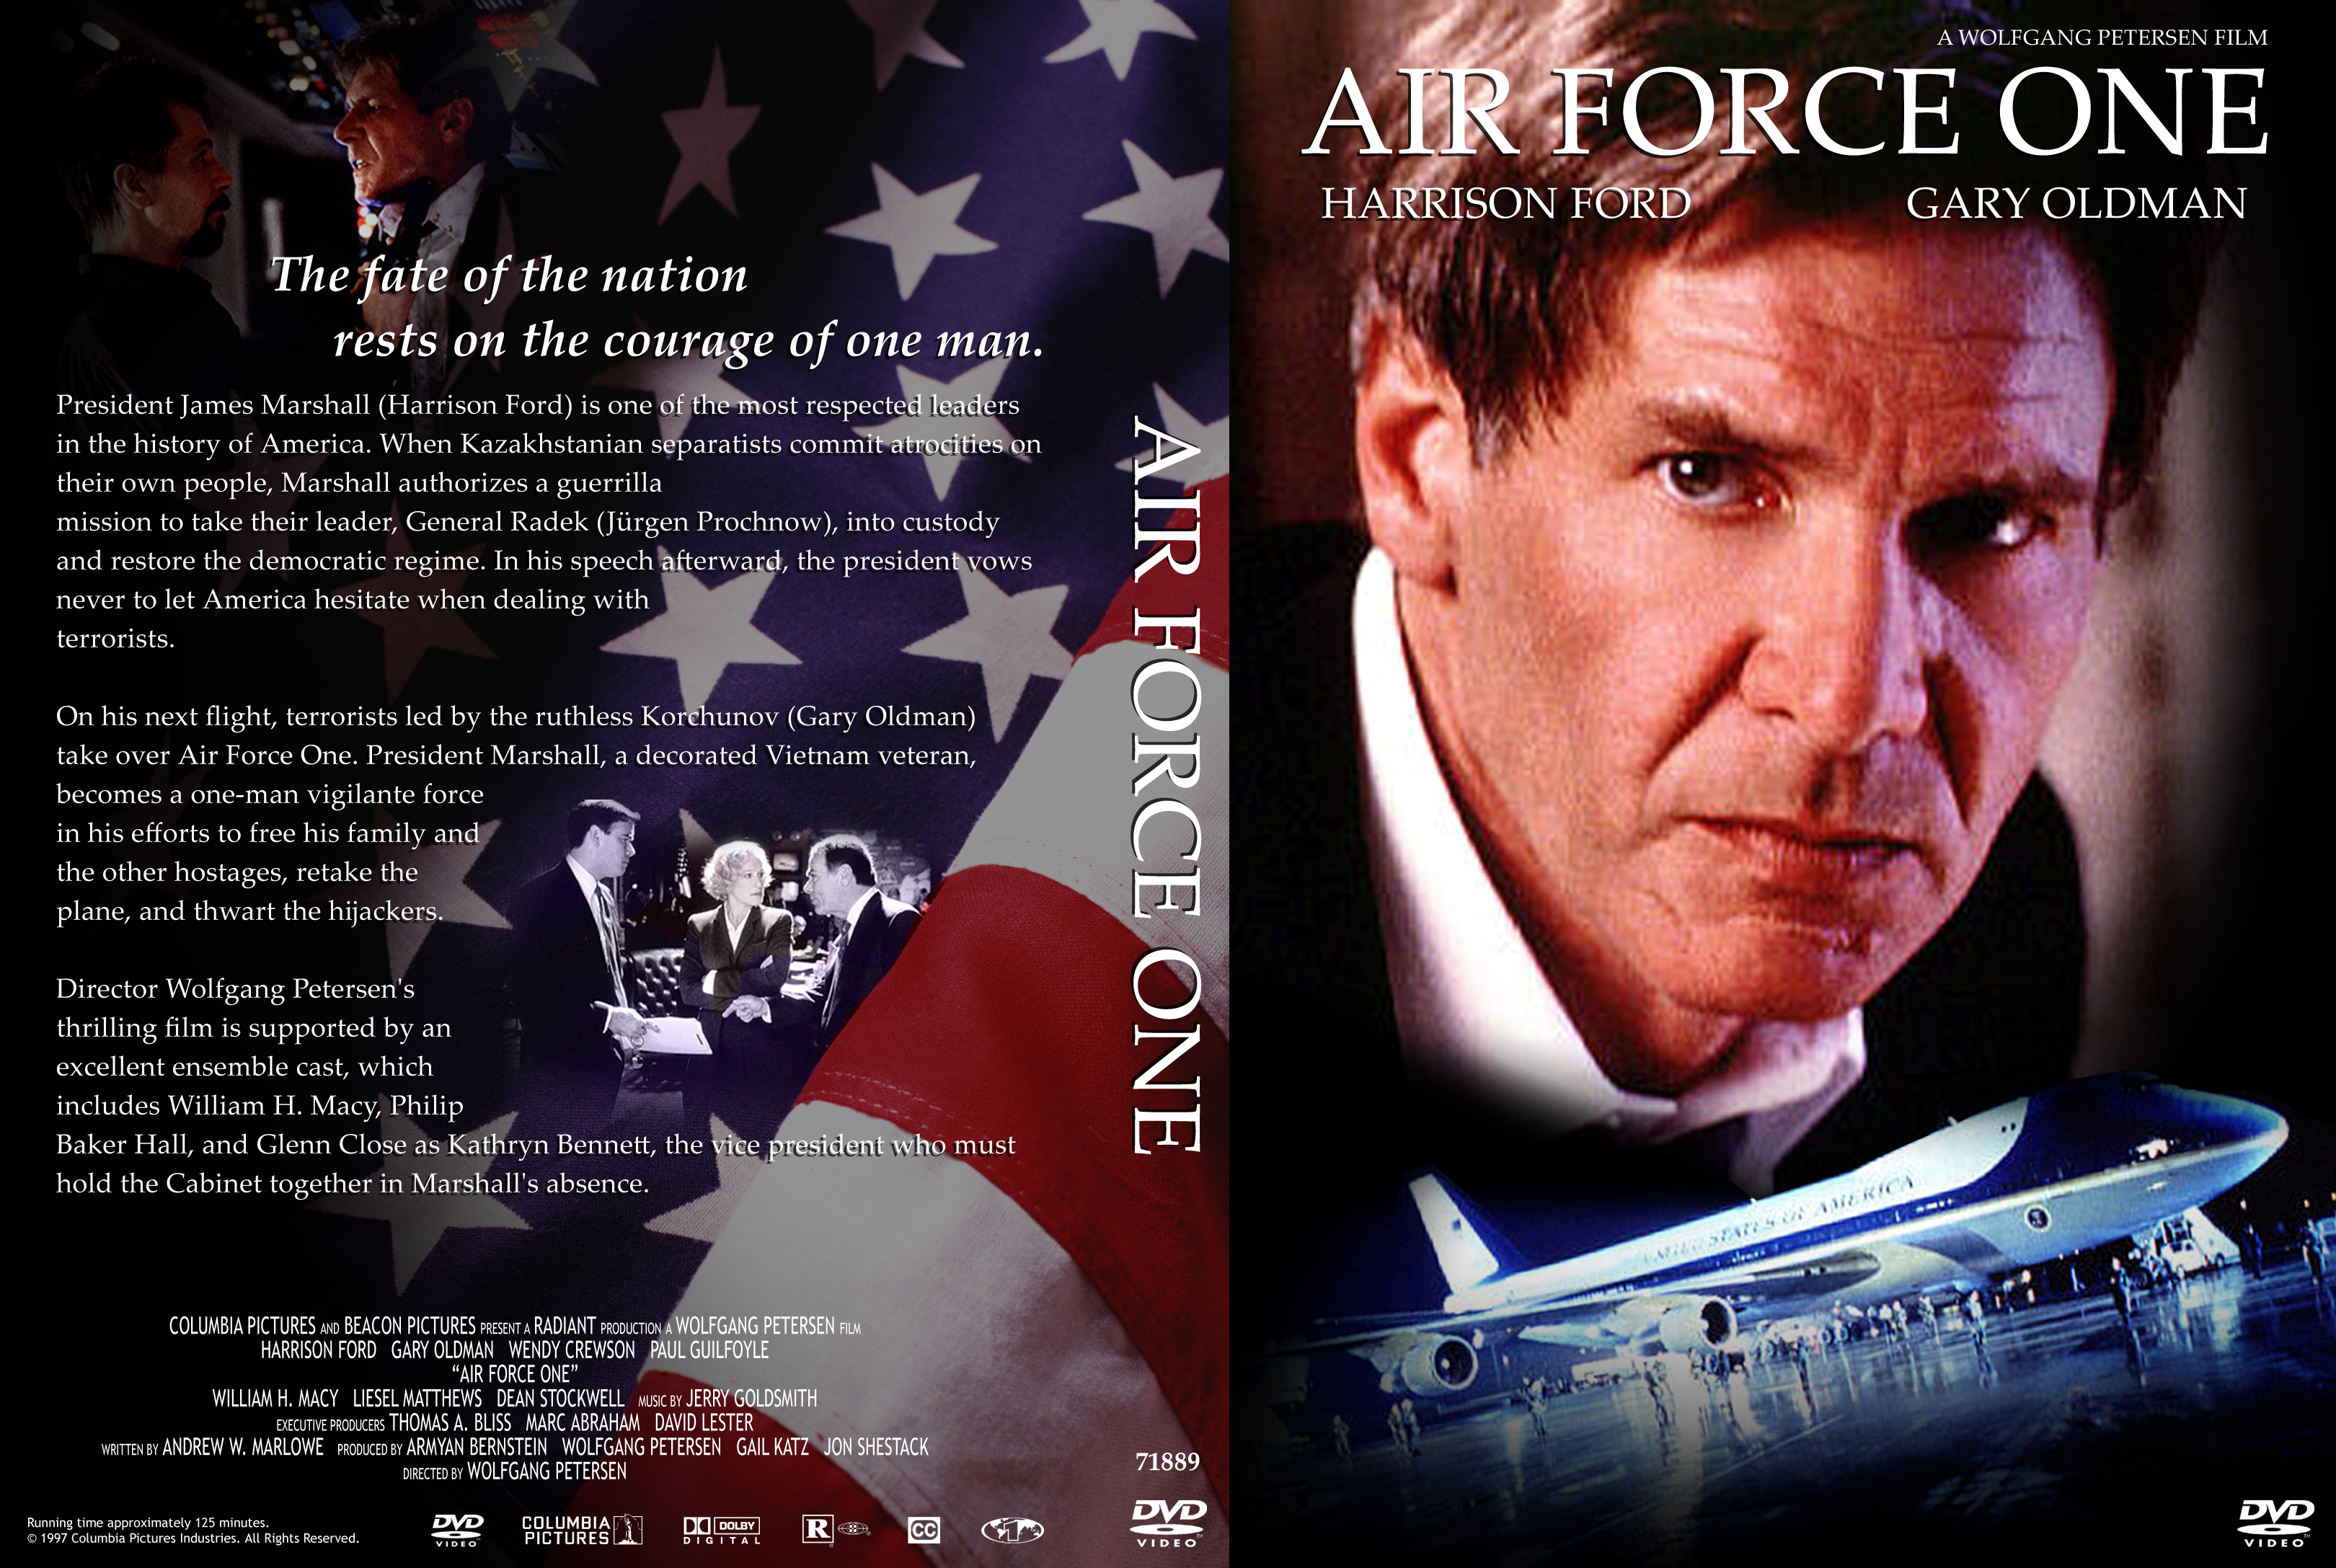 Air Force One Film